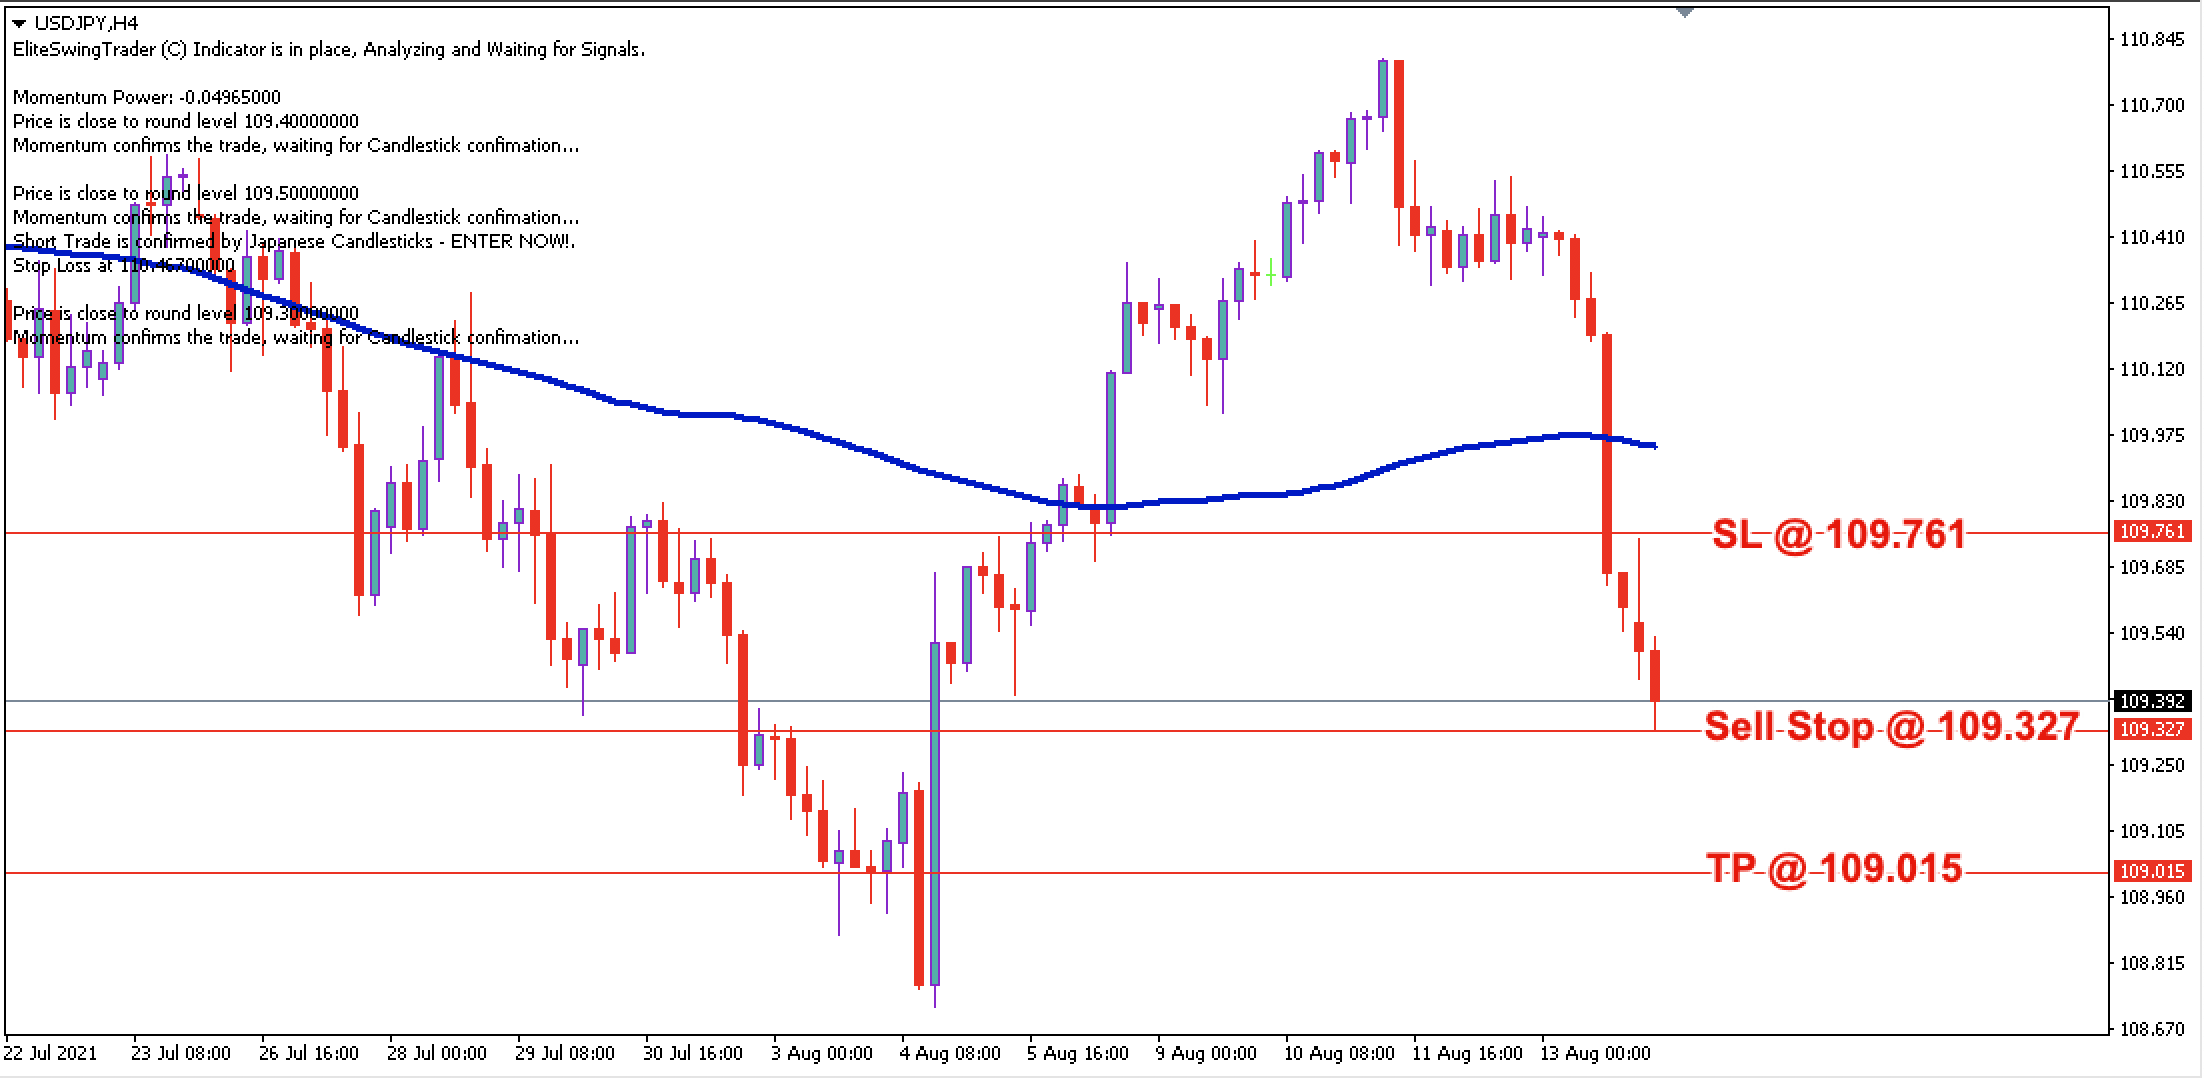 USDJPY Daily Price Forecast – 16th August 2021